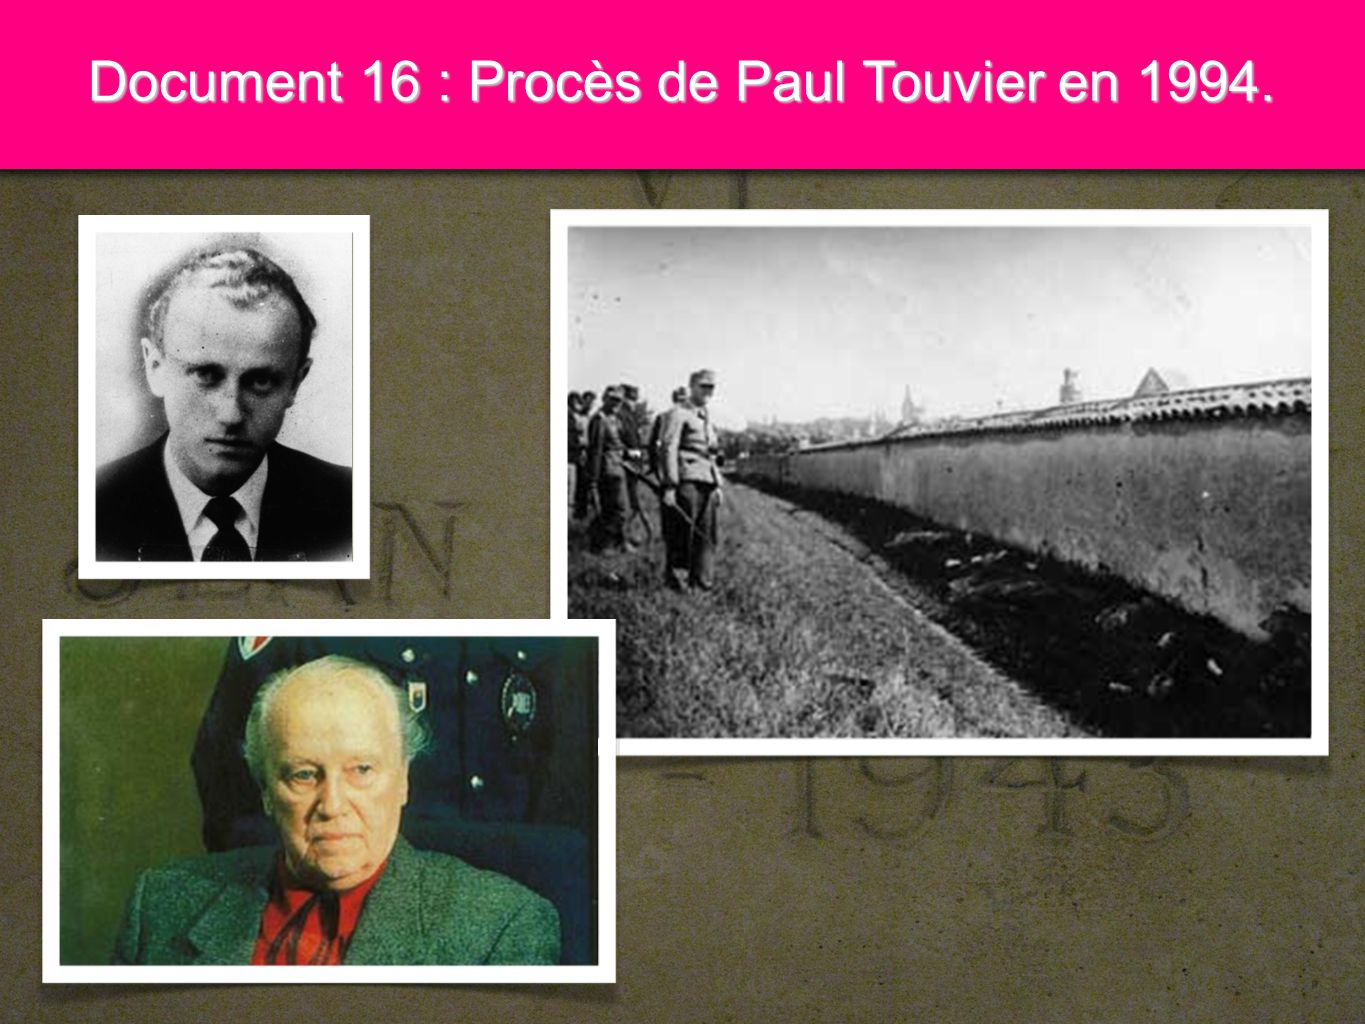 8 Document 16 : Procès de Paul Touvier en 1994.